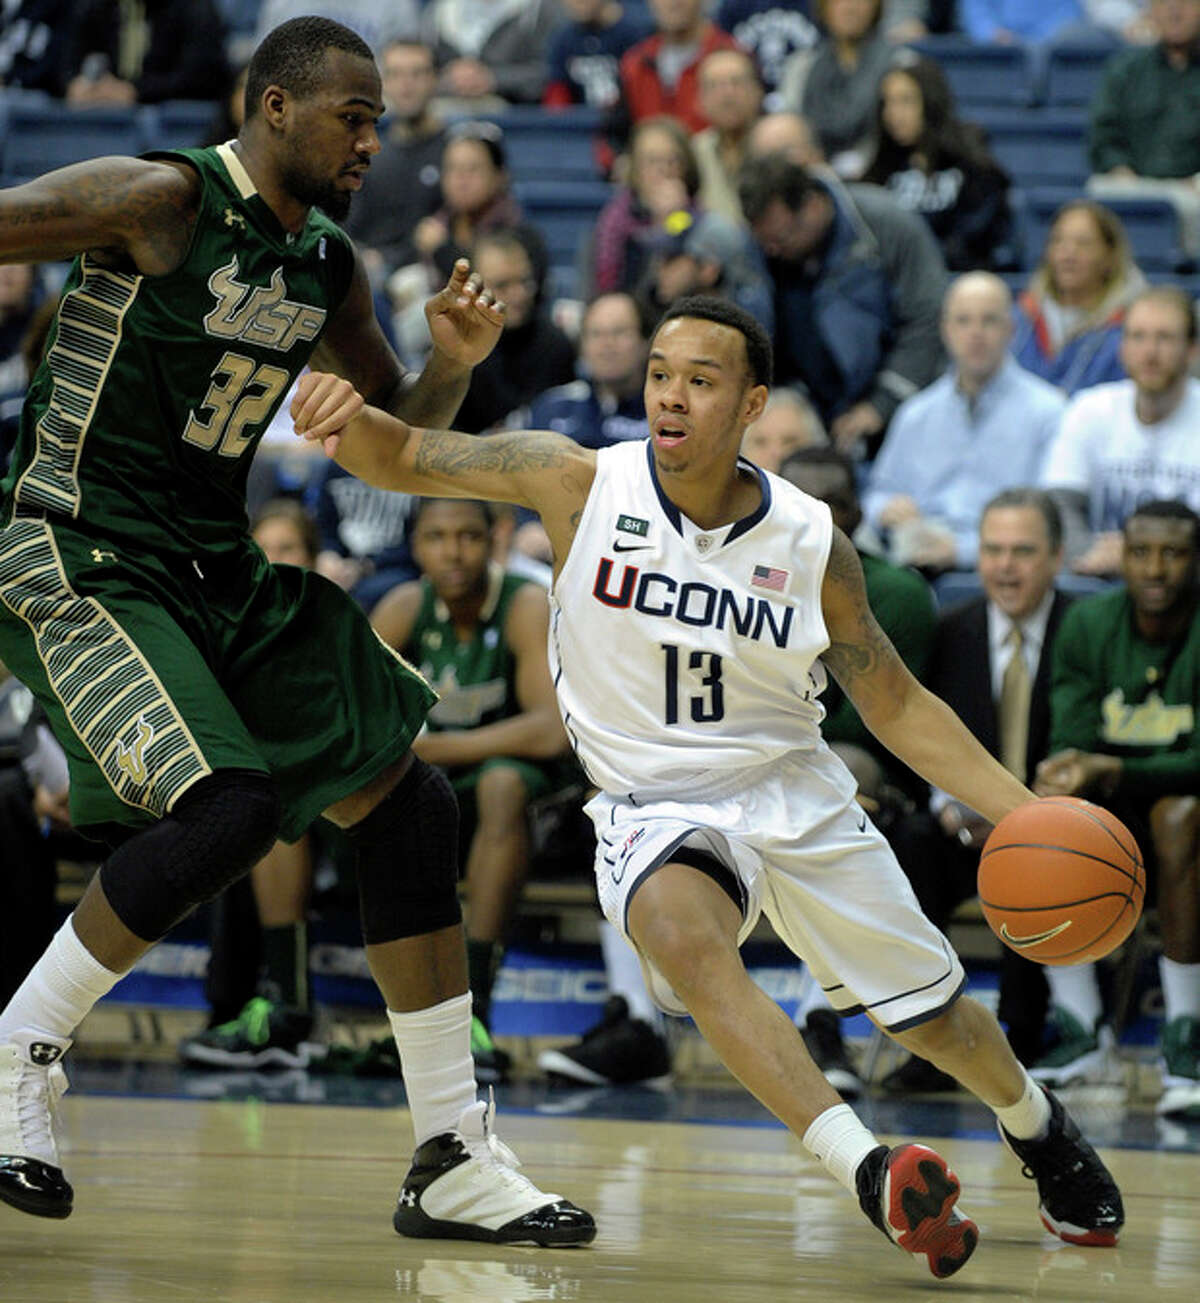 Connecticut's Shabazz Napier, right, drives past South Florida's Toarlyn Fitzpatrick during the first half of an NCAA college basketball game in Storrs, Conn., Sunday, Feb. 3, 2013. (AP Photo/Fred Beckham)